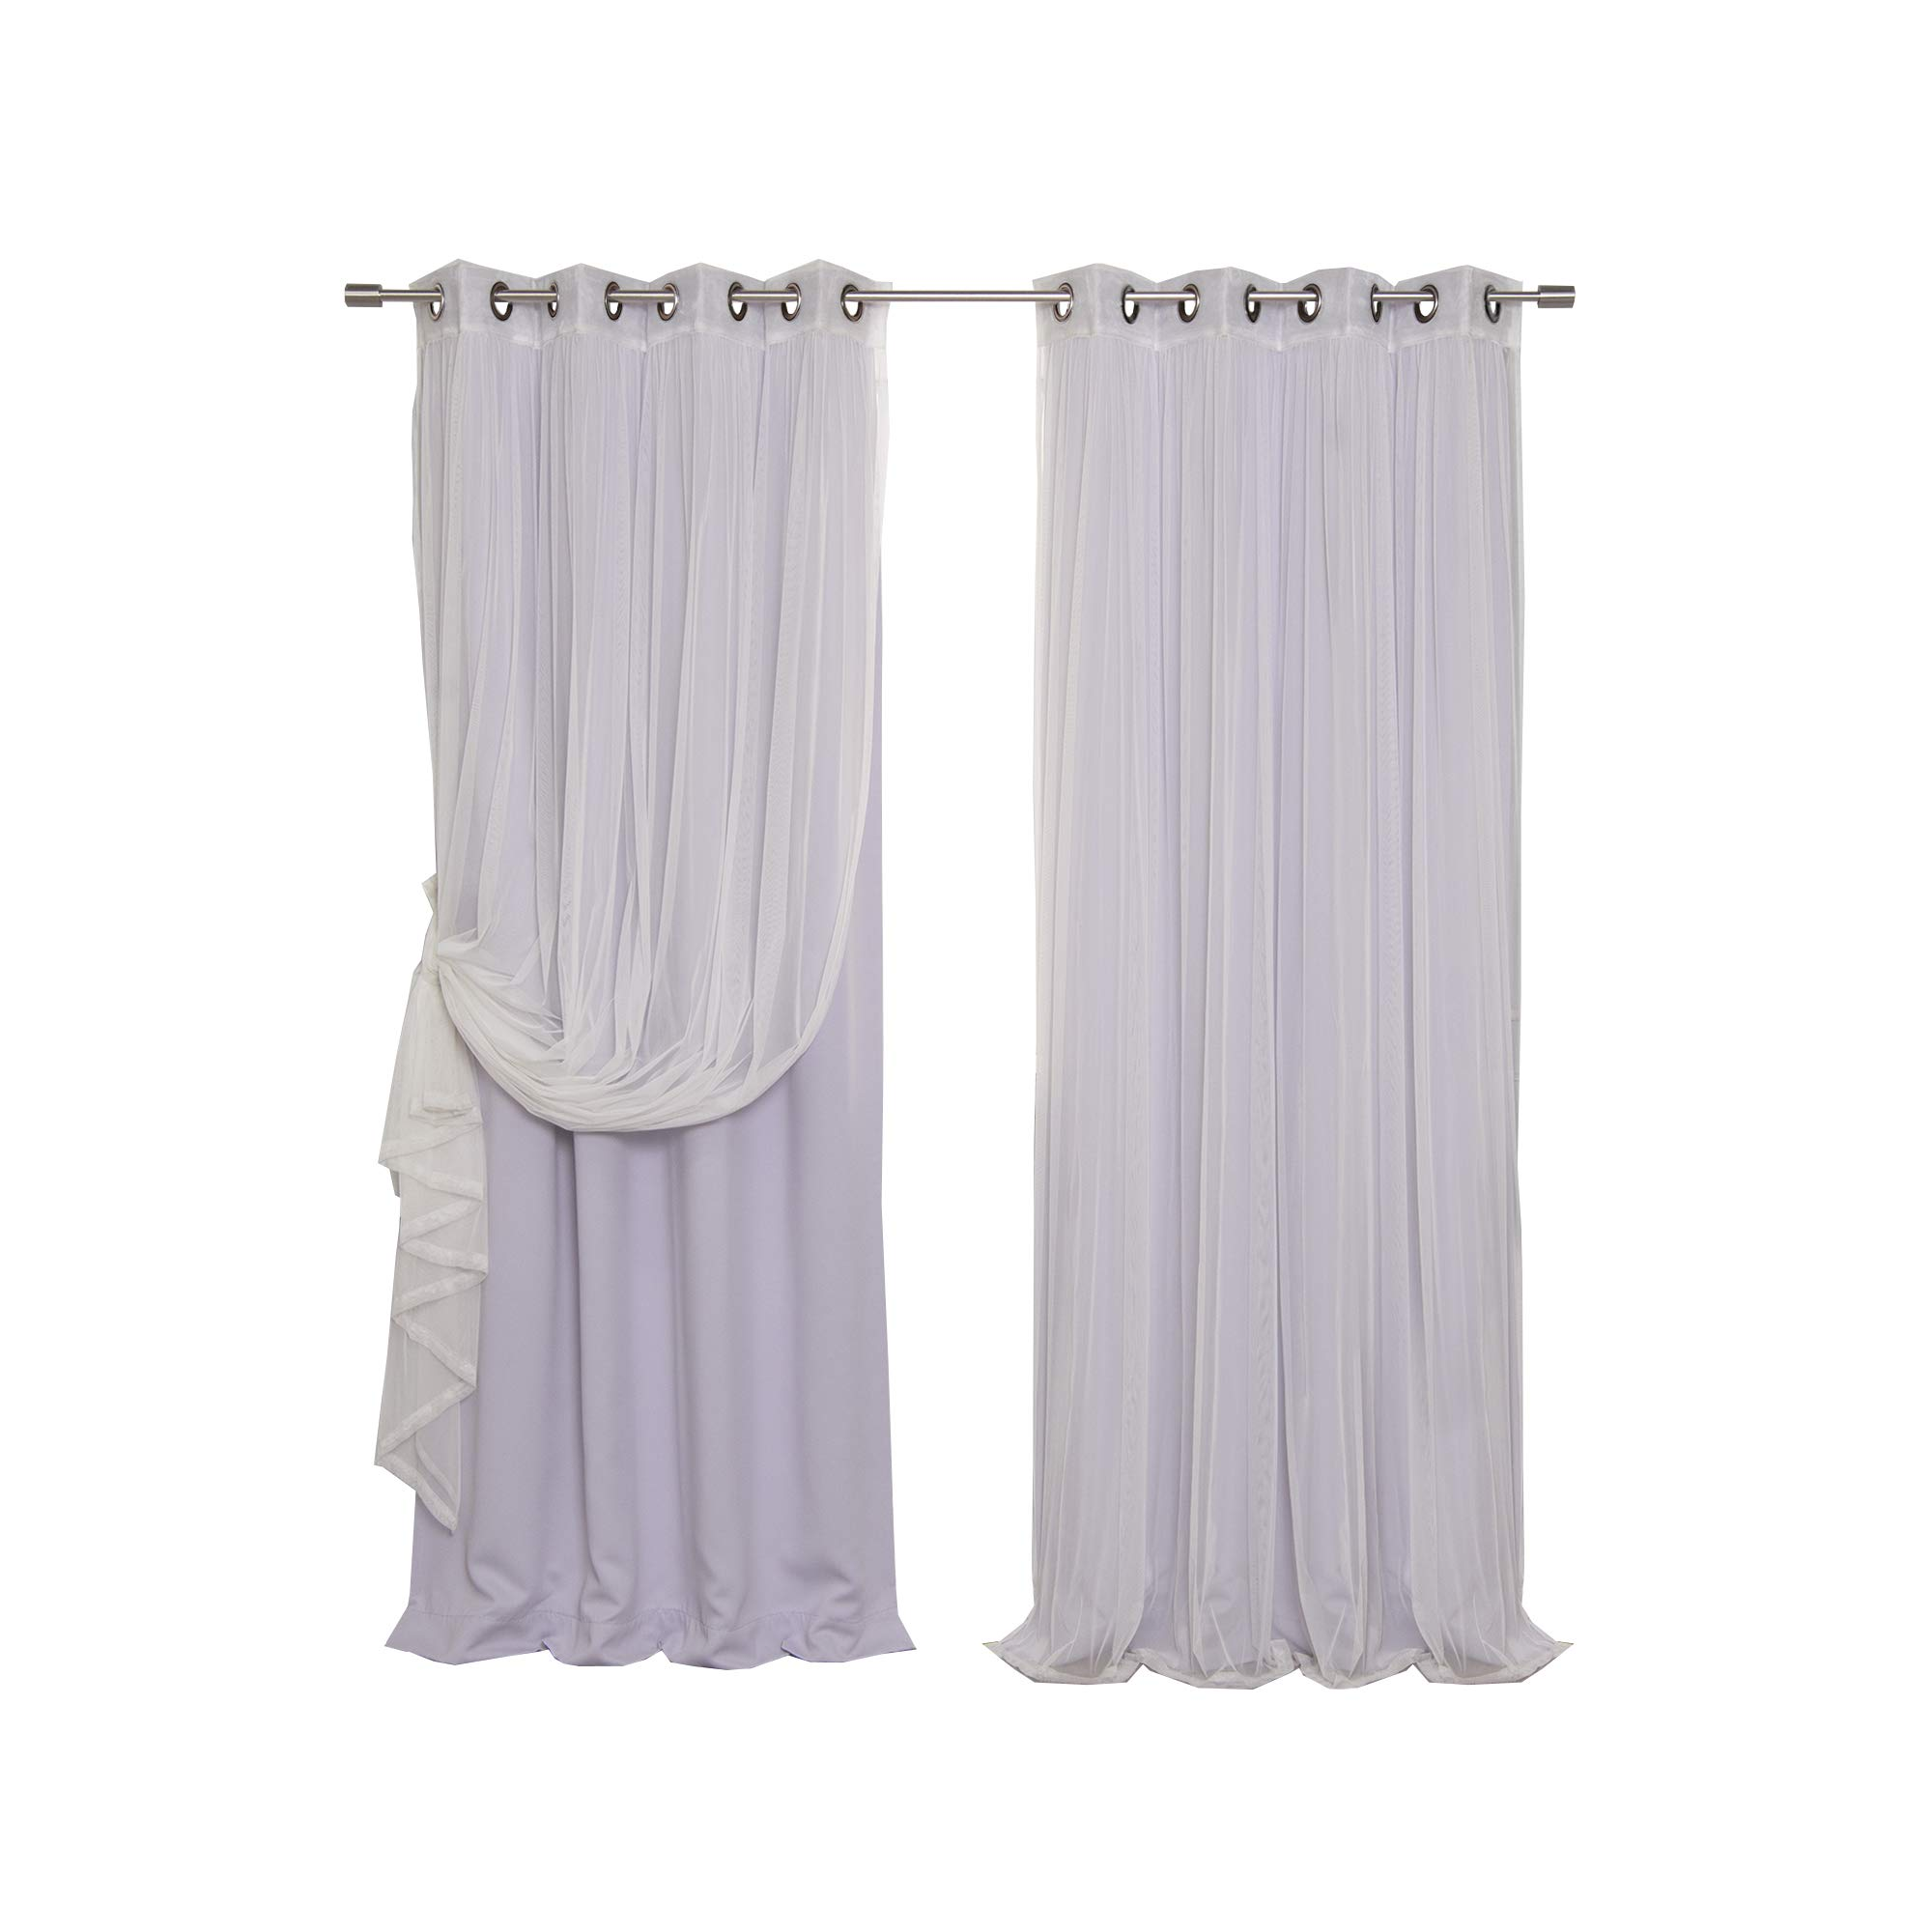 Best Home Fashion Mix & Match Tulle Sheer Lace & Blackout Curtain Set - Antique Bronze Grommet Top - Lilac - 52'' W X 84'' L - (2 Curtains and 2 Sheer curtains)